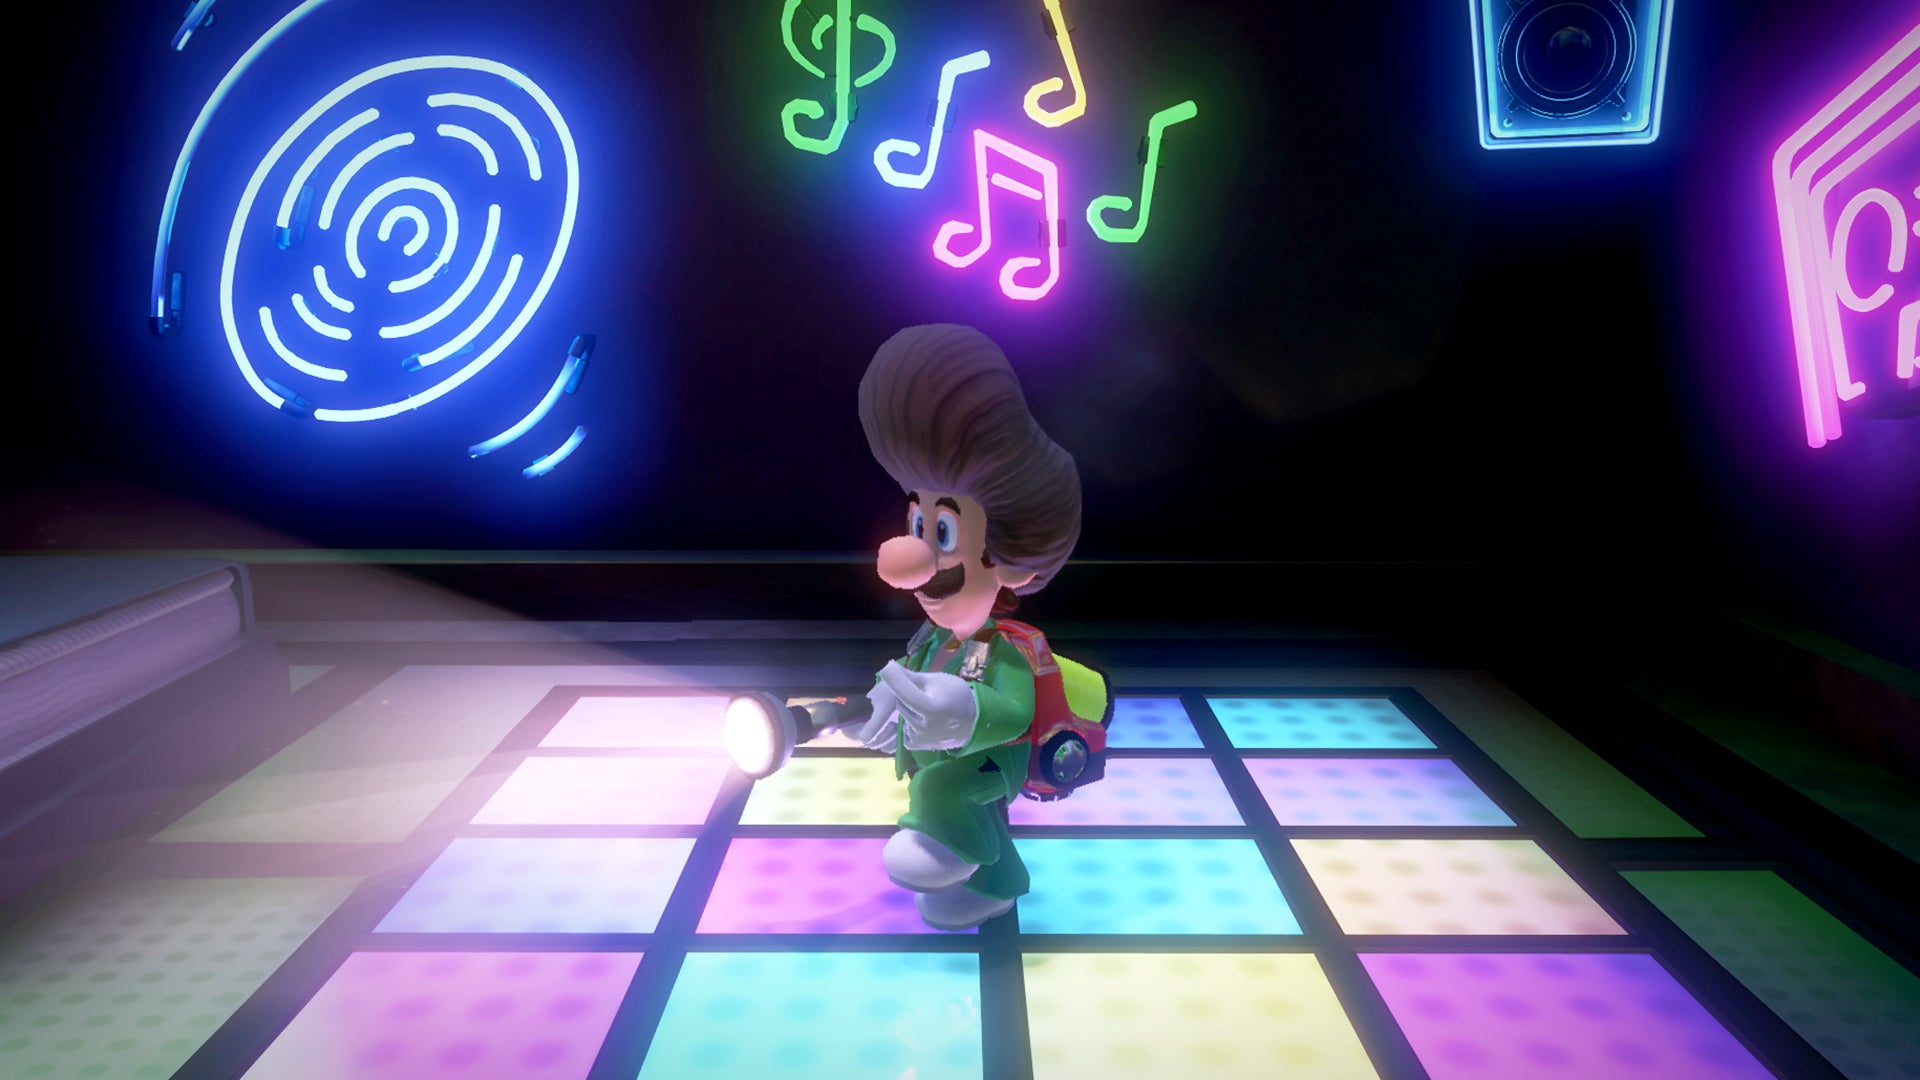 Luigi's Mansion 3 Developers Explain Why Their DLC Is Multiplayer